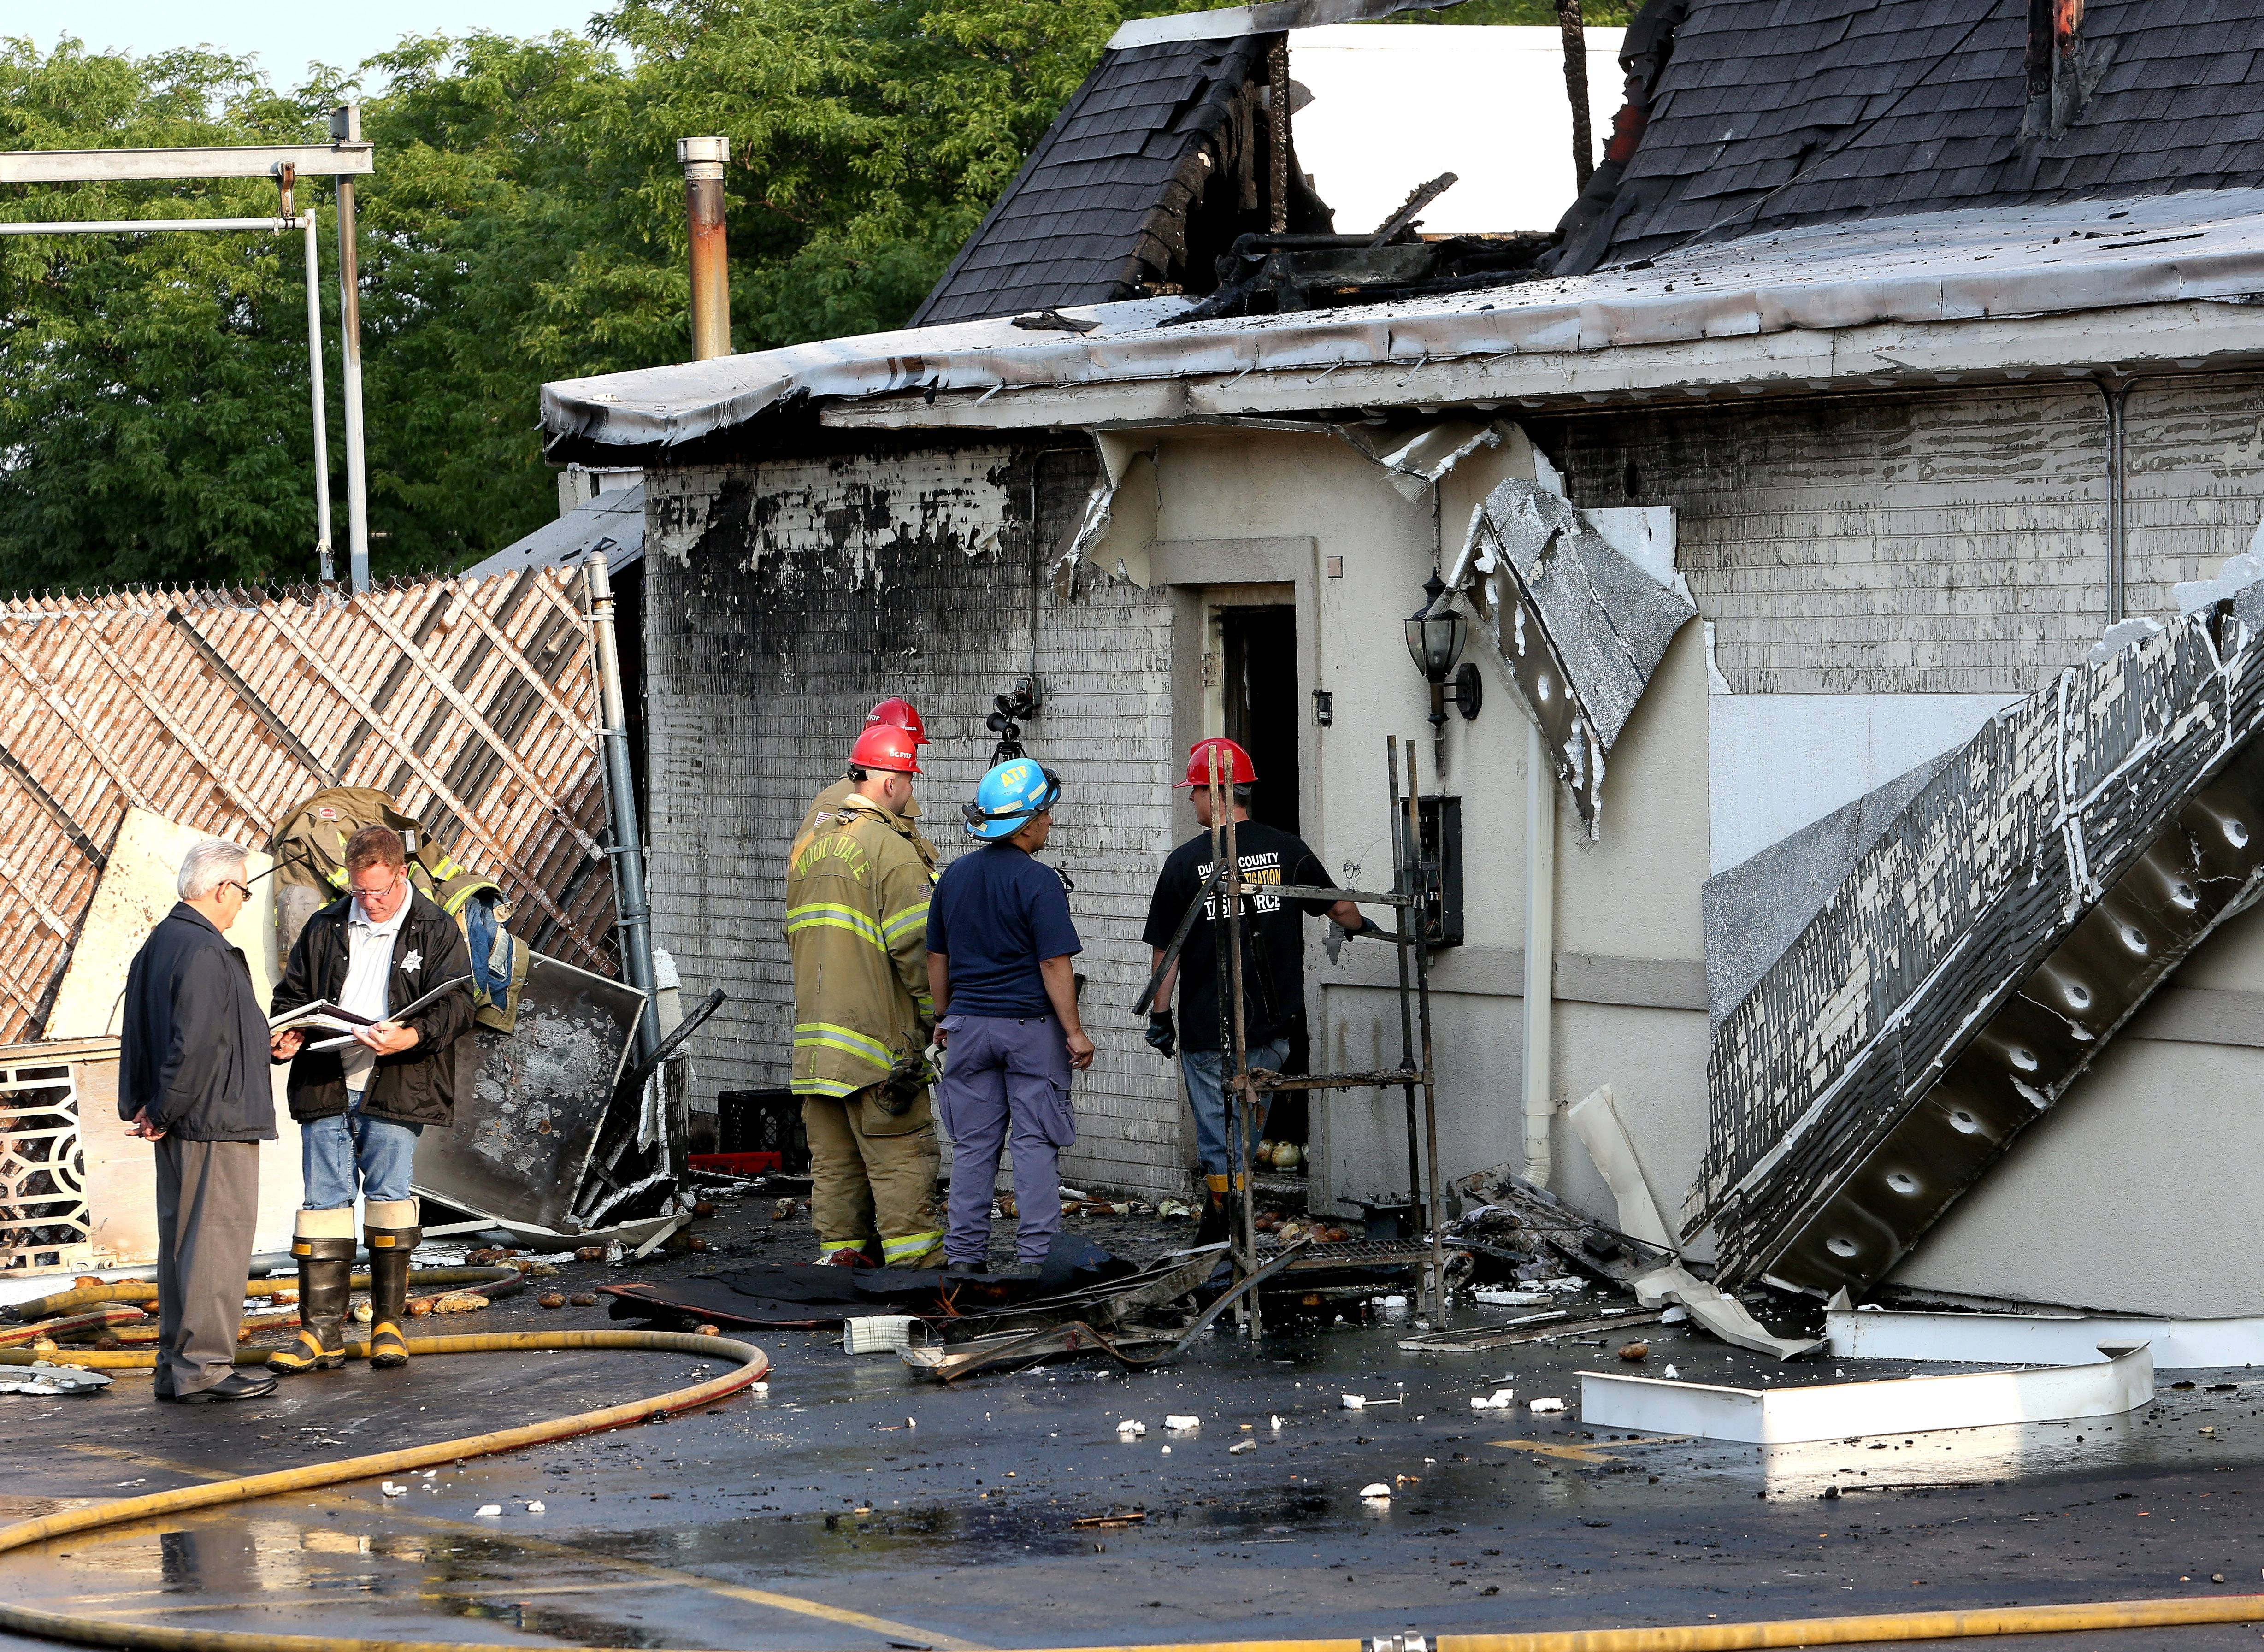 Naperville firefighters are investigating the cause of an early morning fire that caused extensive damage Friday to an Ogden Avenue restaurant. No injuries were reported in the blaze that was first spotted around 2:15 a.m.